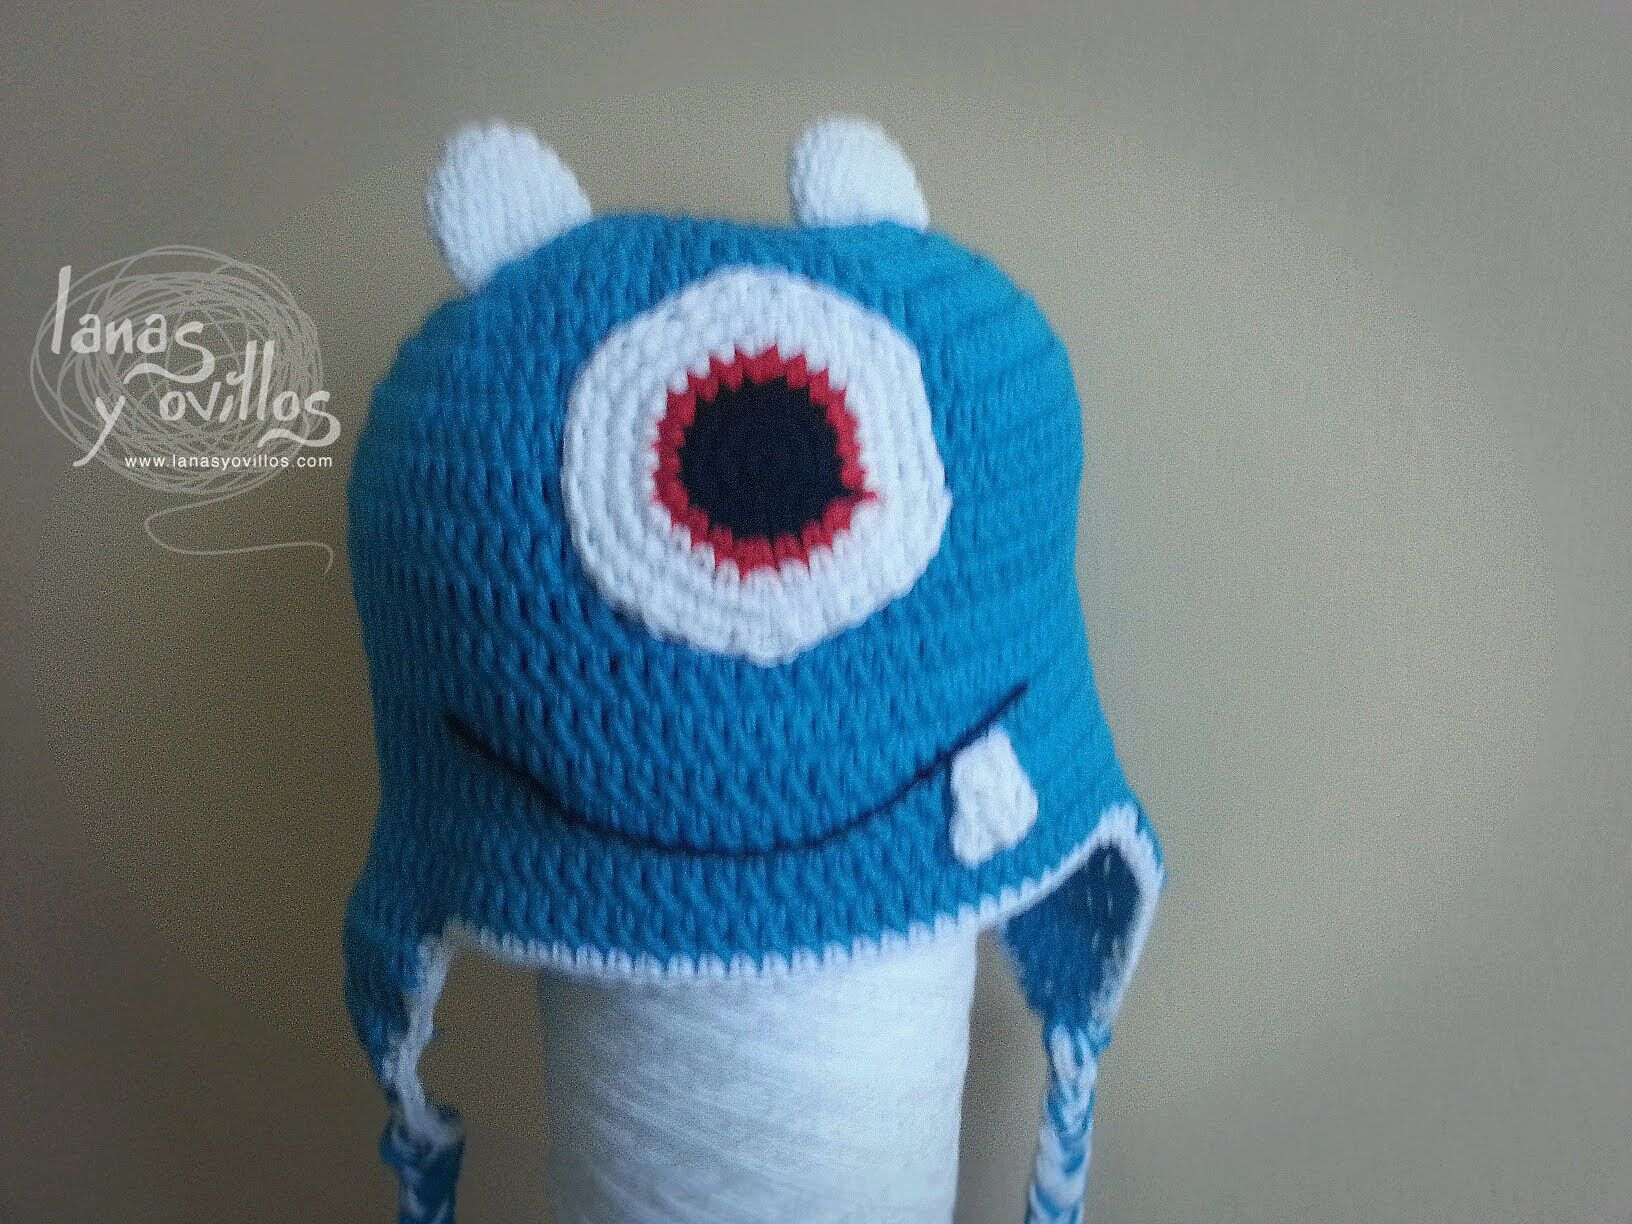 1000+ images about crochet kanhomyx on Pinterest